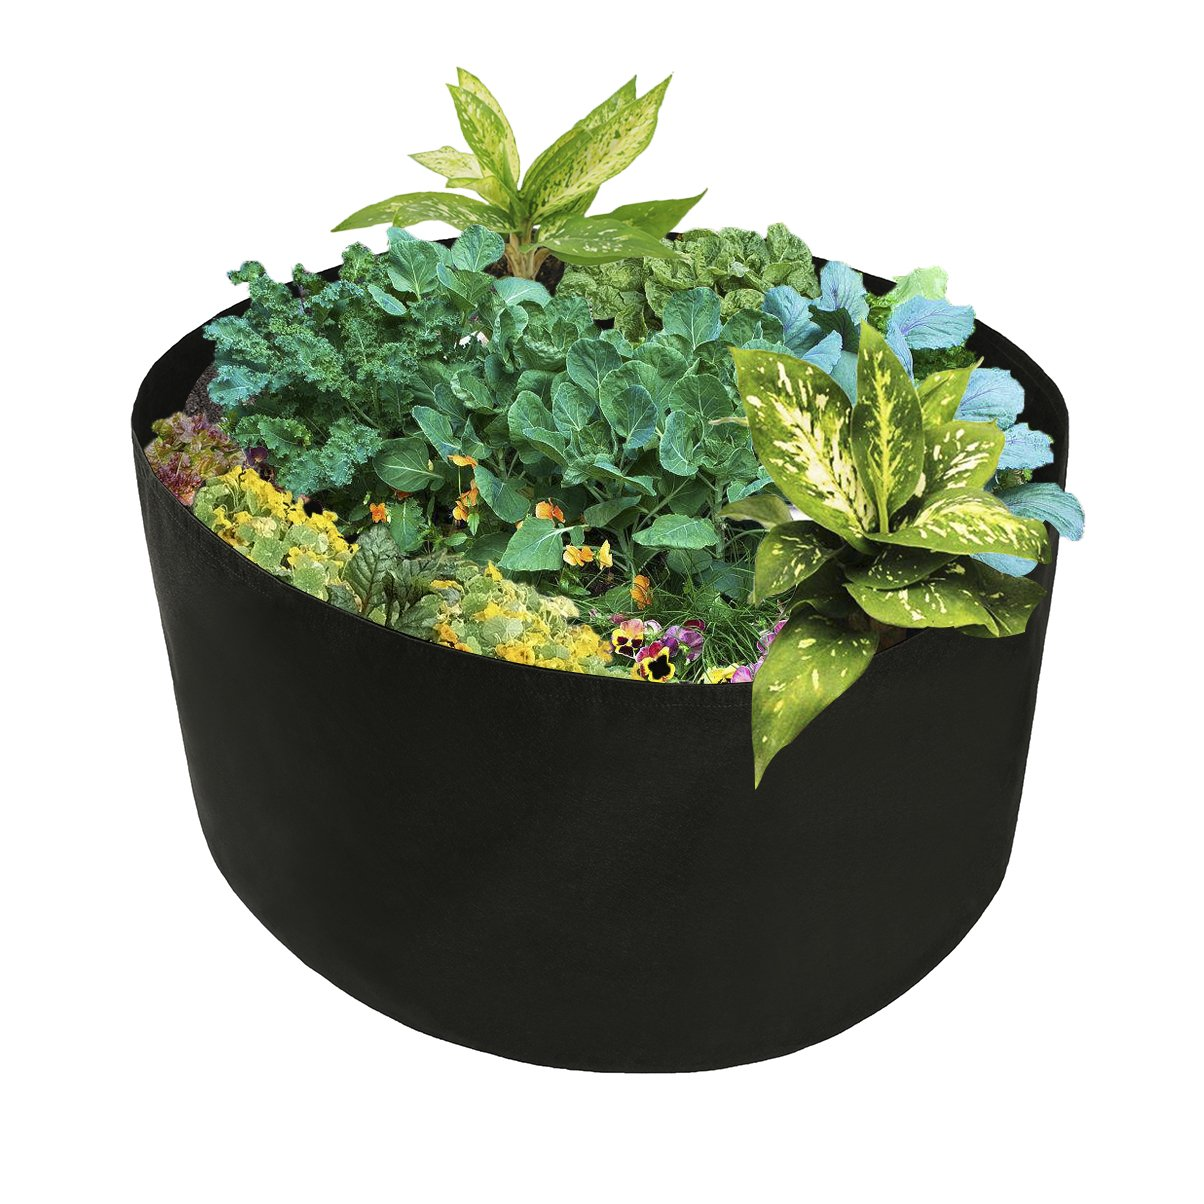 Mokylor 150-Gallon Extra Large Raised Bed, Round Grow Bag Diameter 46'' Height 22'' Made Of Growth Friendly Felt for Nursery Garden and Planting Grow (Black) by Mokylor